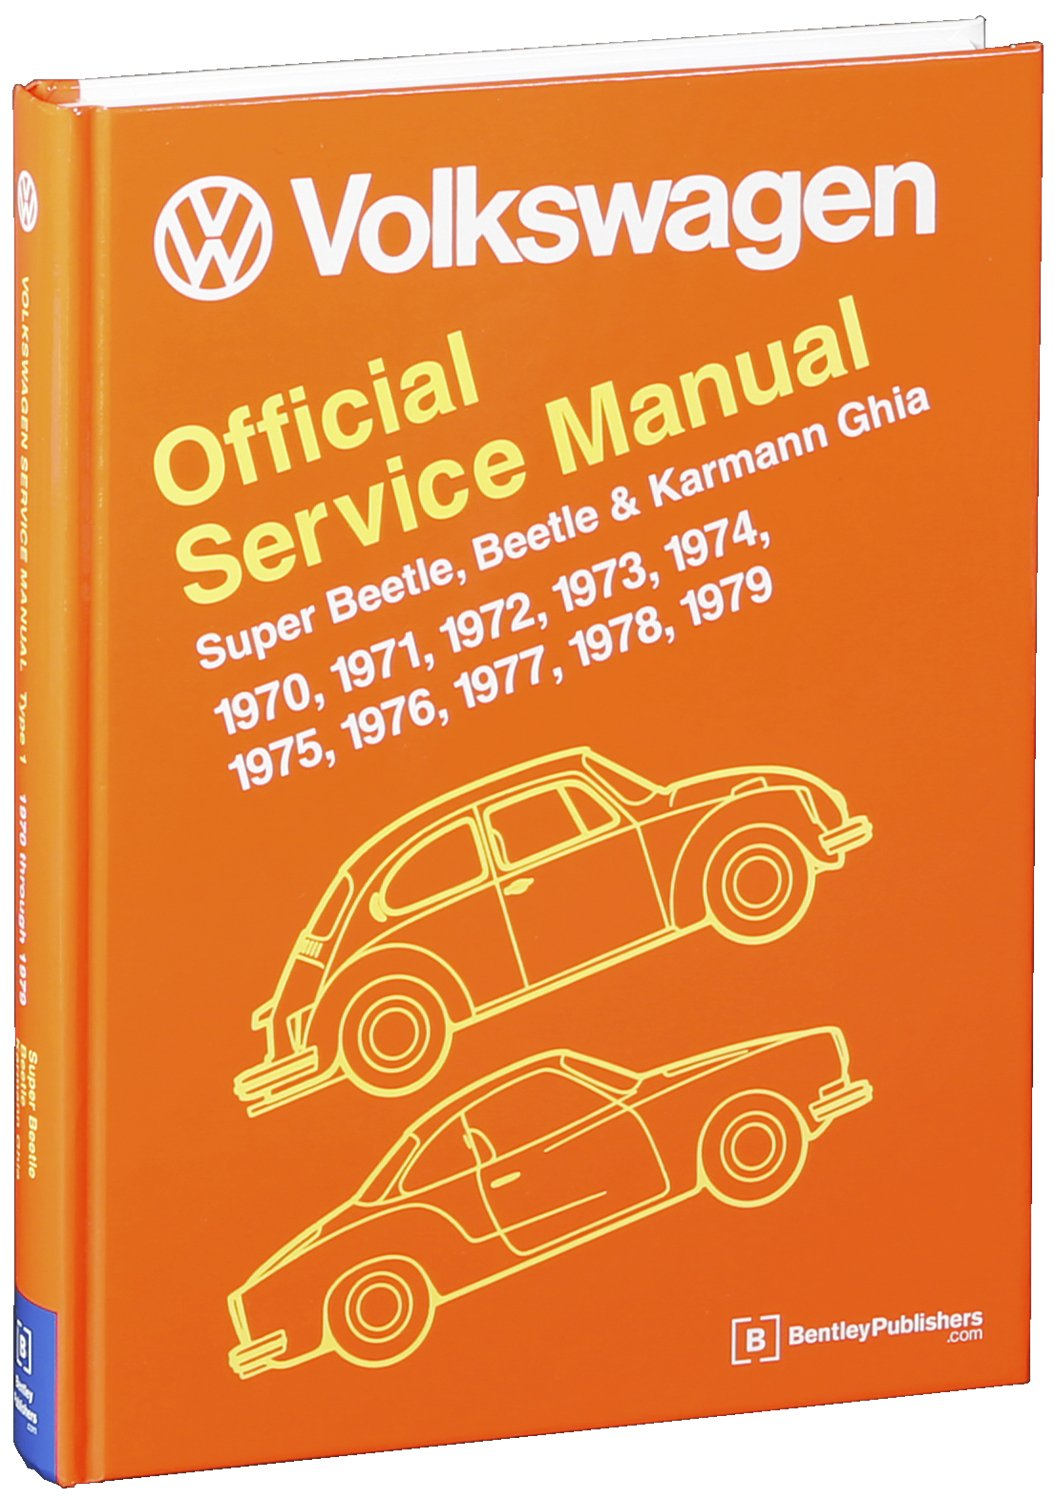 Volkswagen Super Beetle Karmann Ghia Type 1 Official 22 Basic Wiring Diagrams27 Electrical Decornorthcom Service Manual 1970 1971 1972 1973 1974 1975 1976 1977 1978 1979